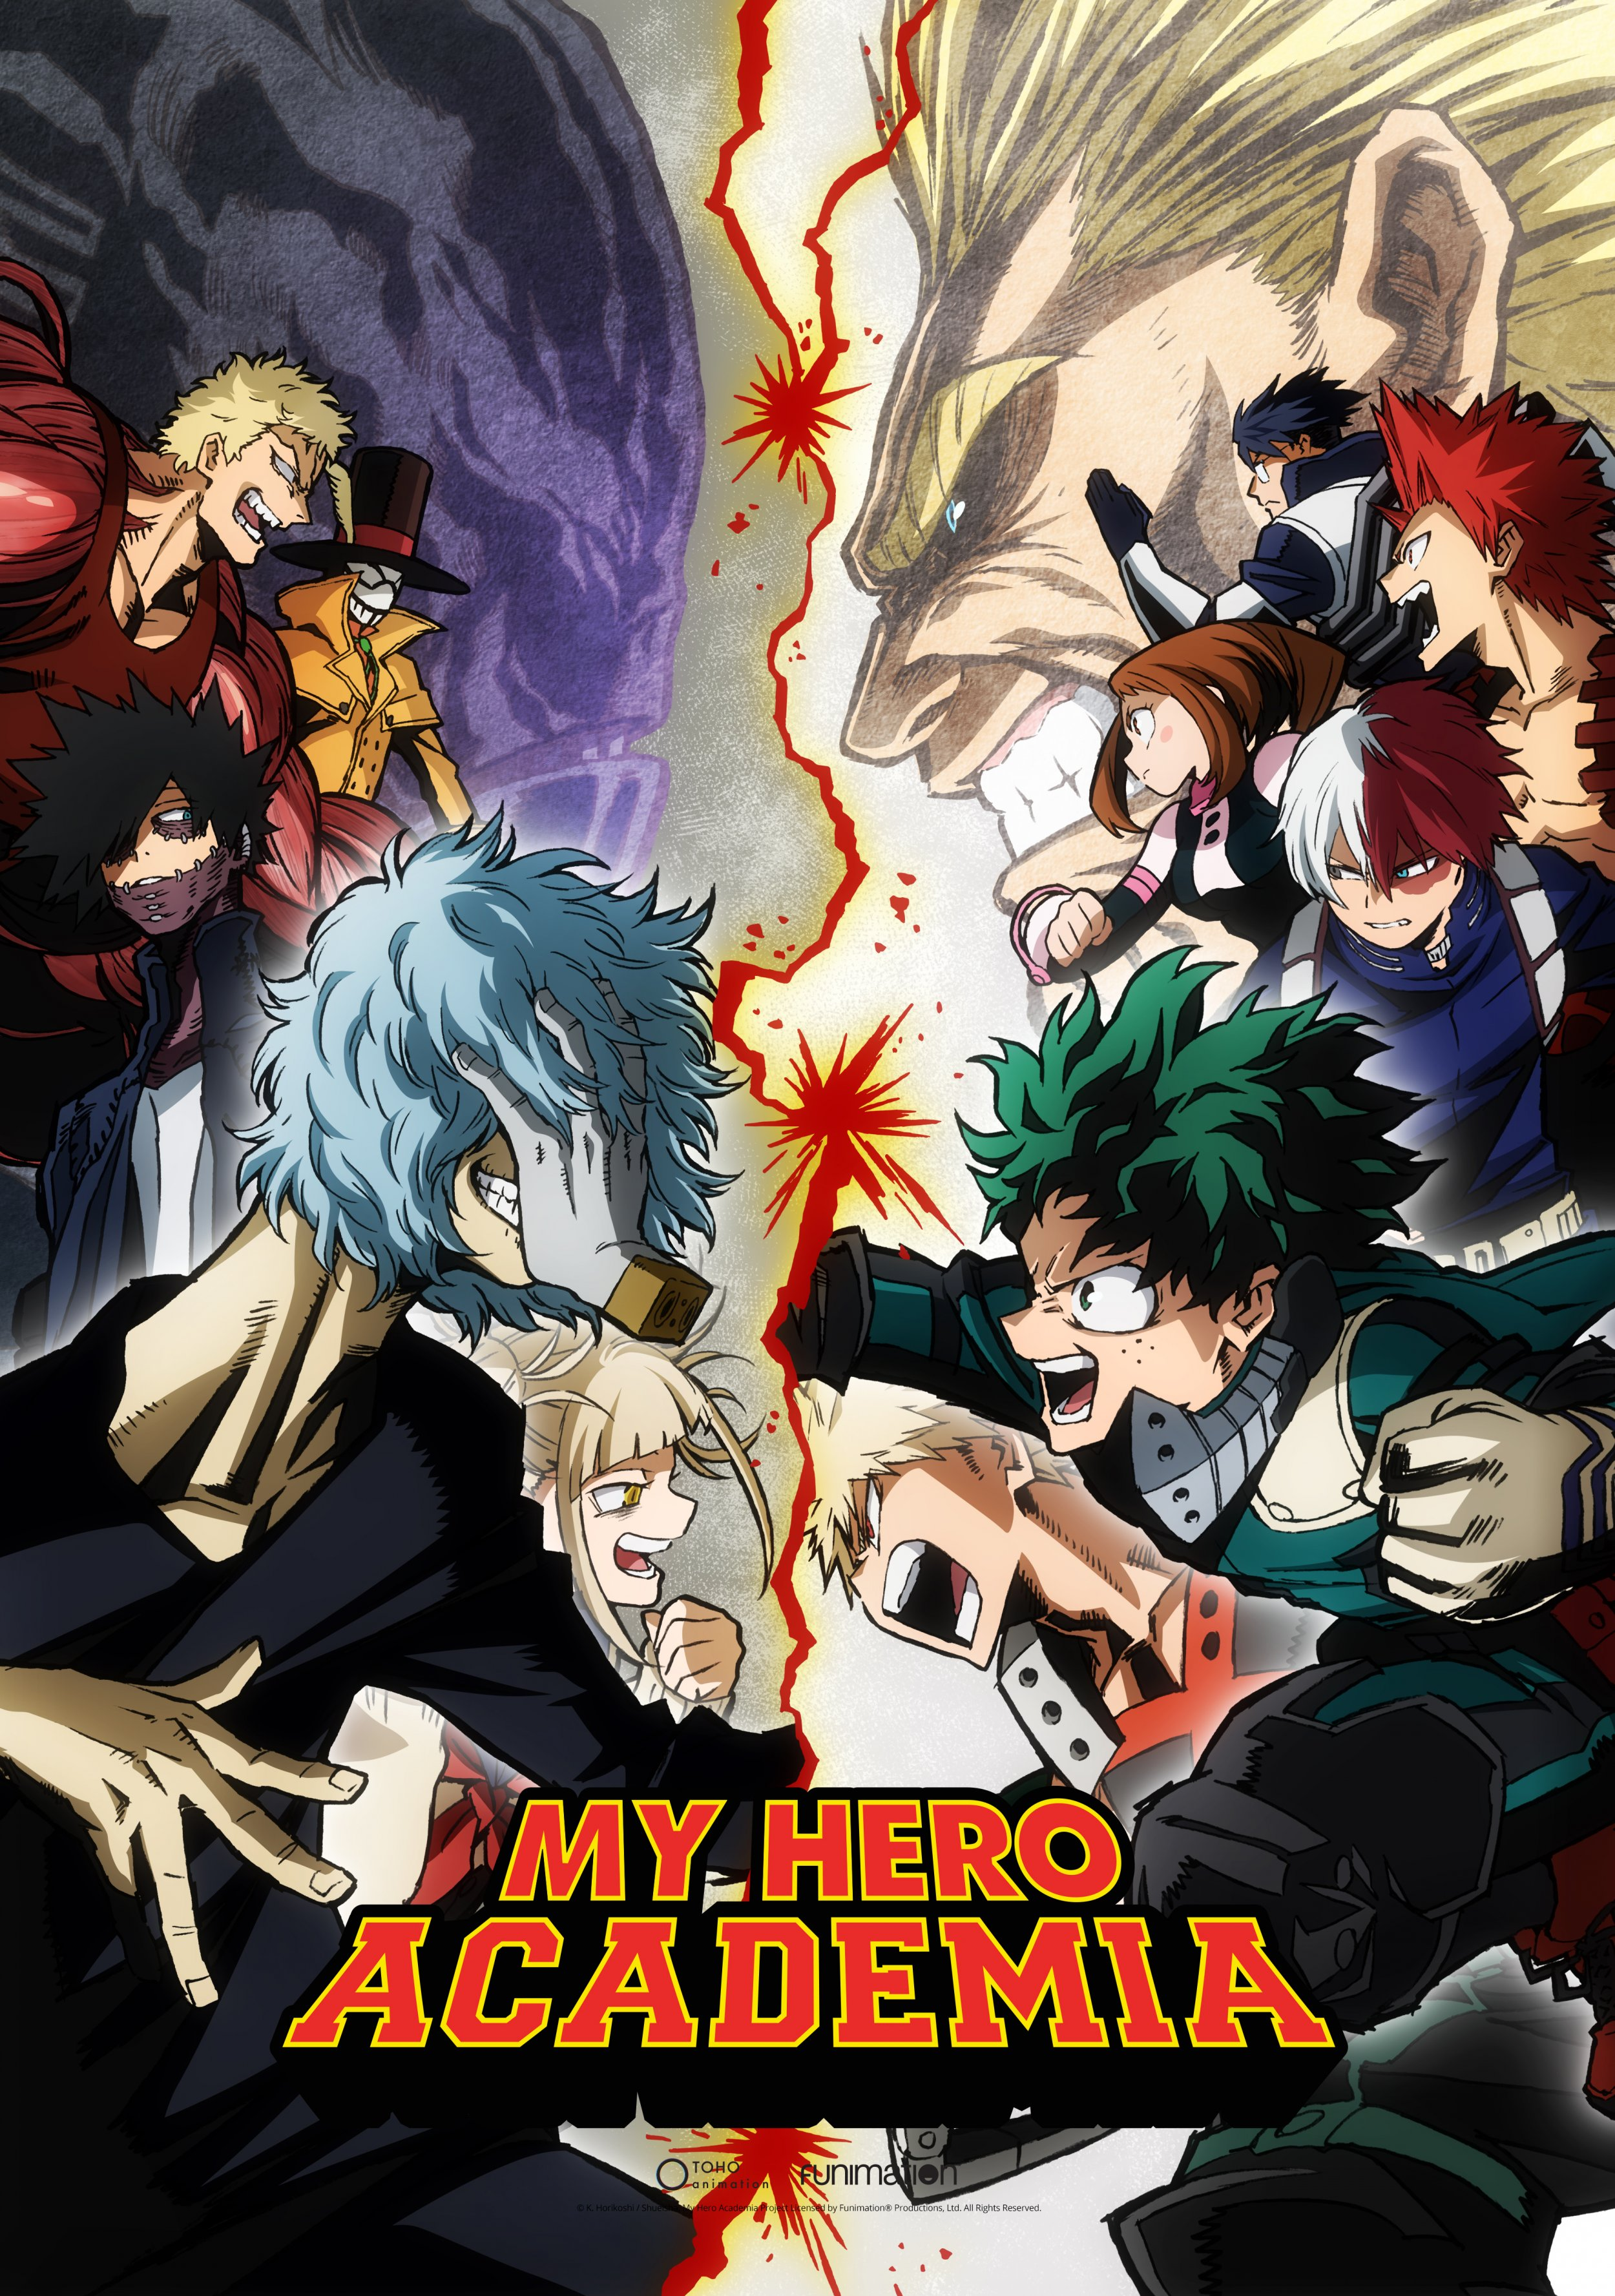 watch My Hero Academia Season 3 Online how to When New Episodes Air where episode 1 what time schedule stream live